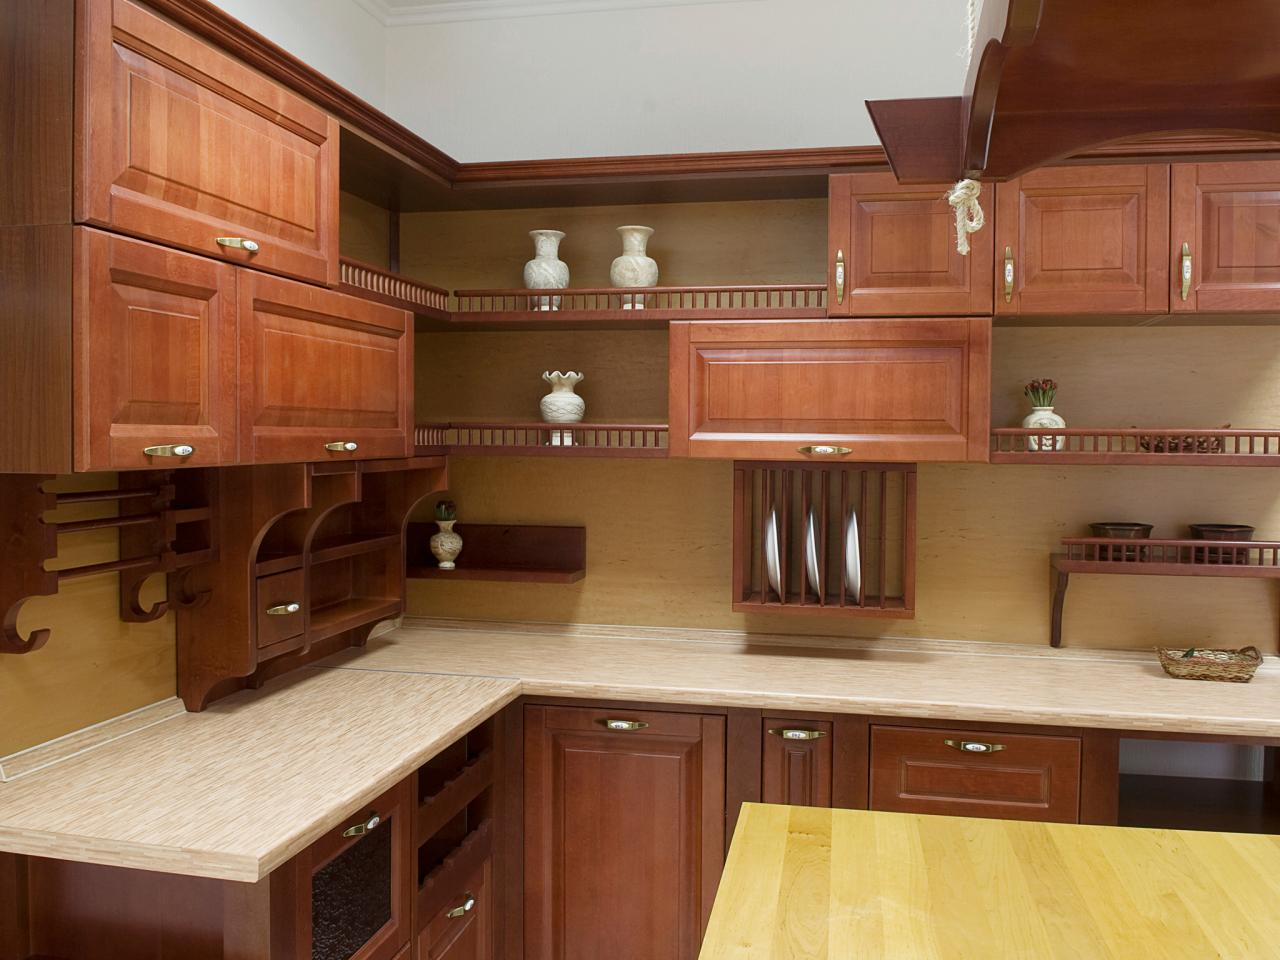 Pictures of designer kitchen cabinets replacement kitchen cabinets gropakf